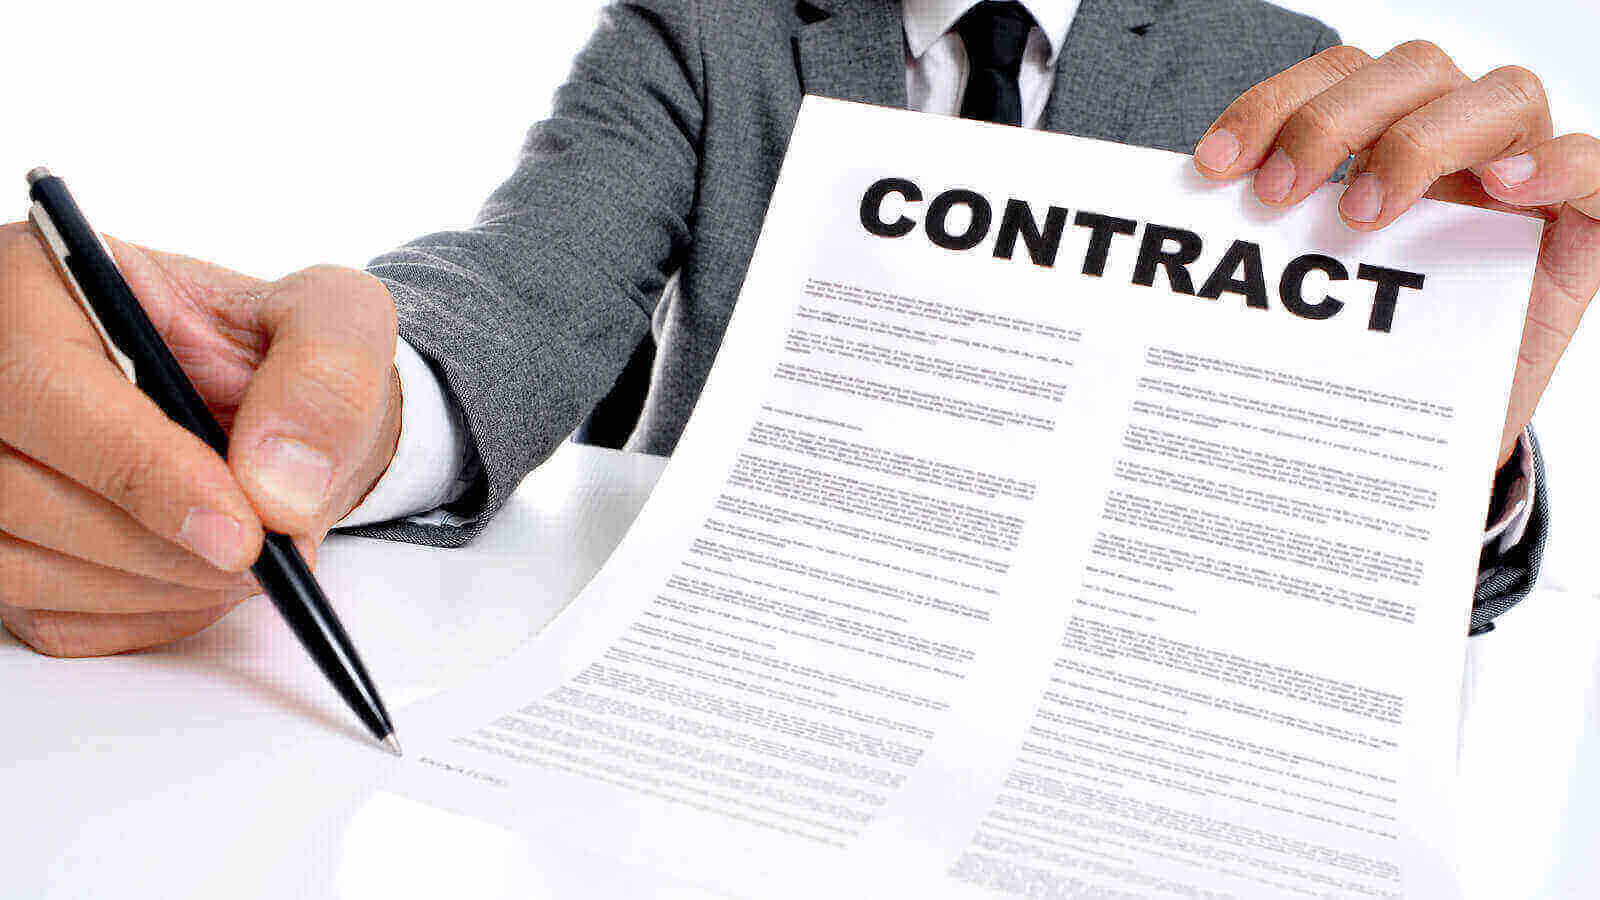 image showing contract